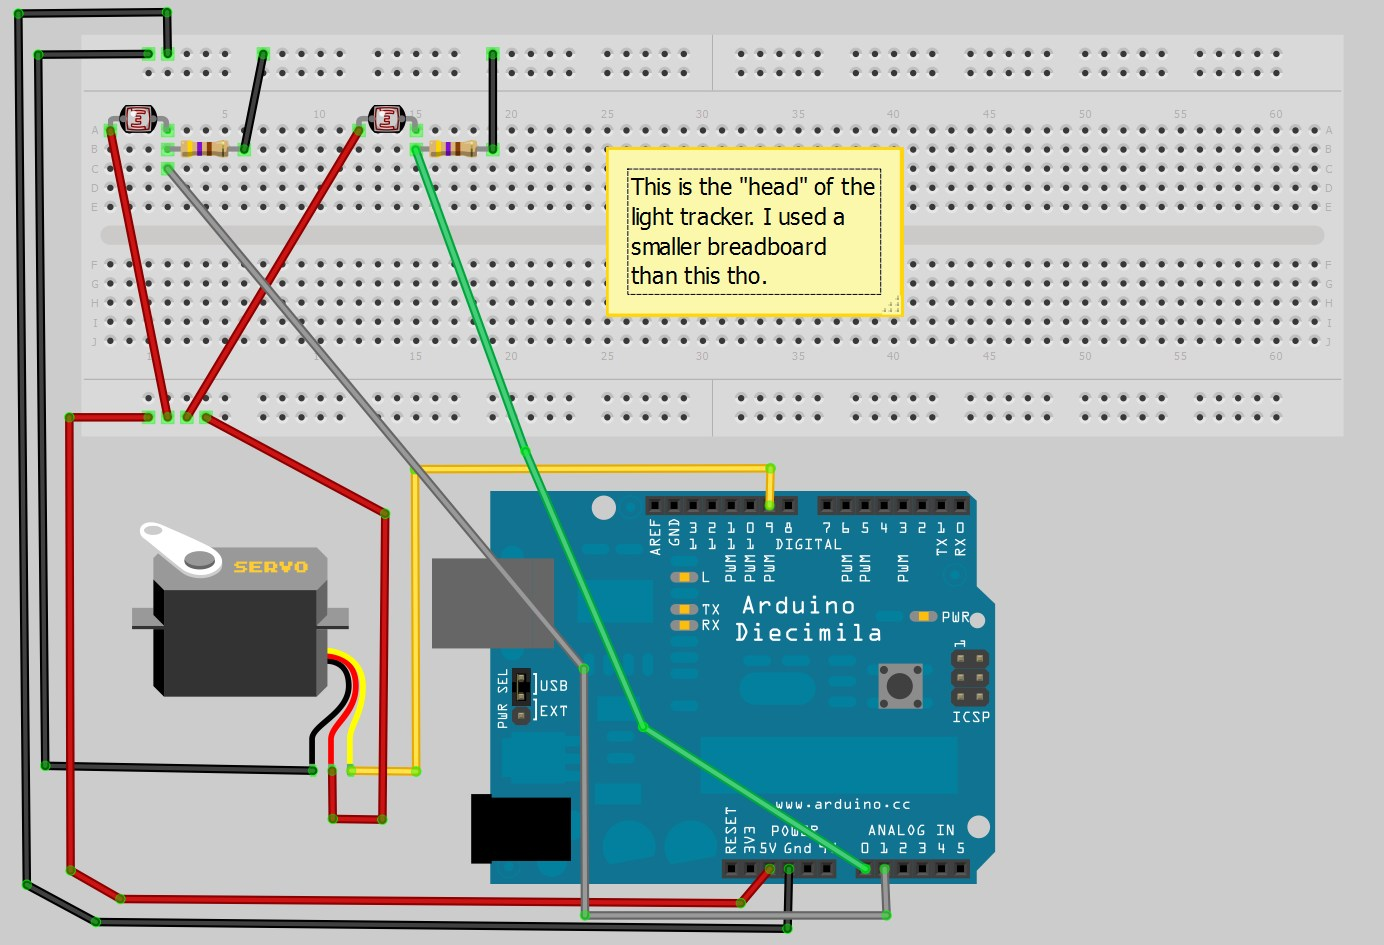 Stigern Net » Blog Archive How to make a light tracker using arduino